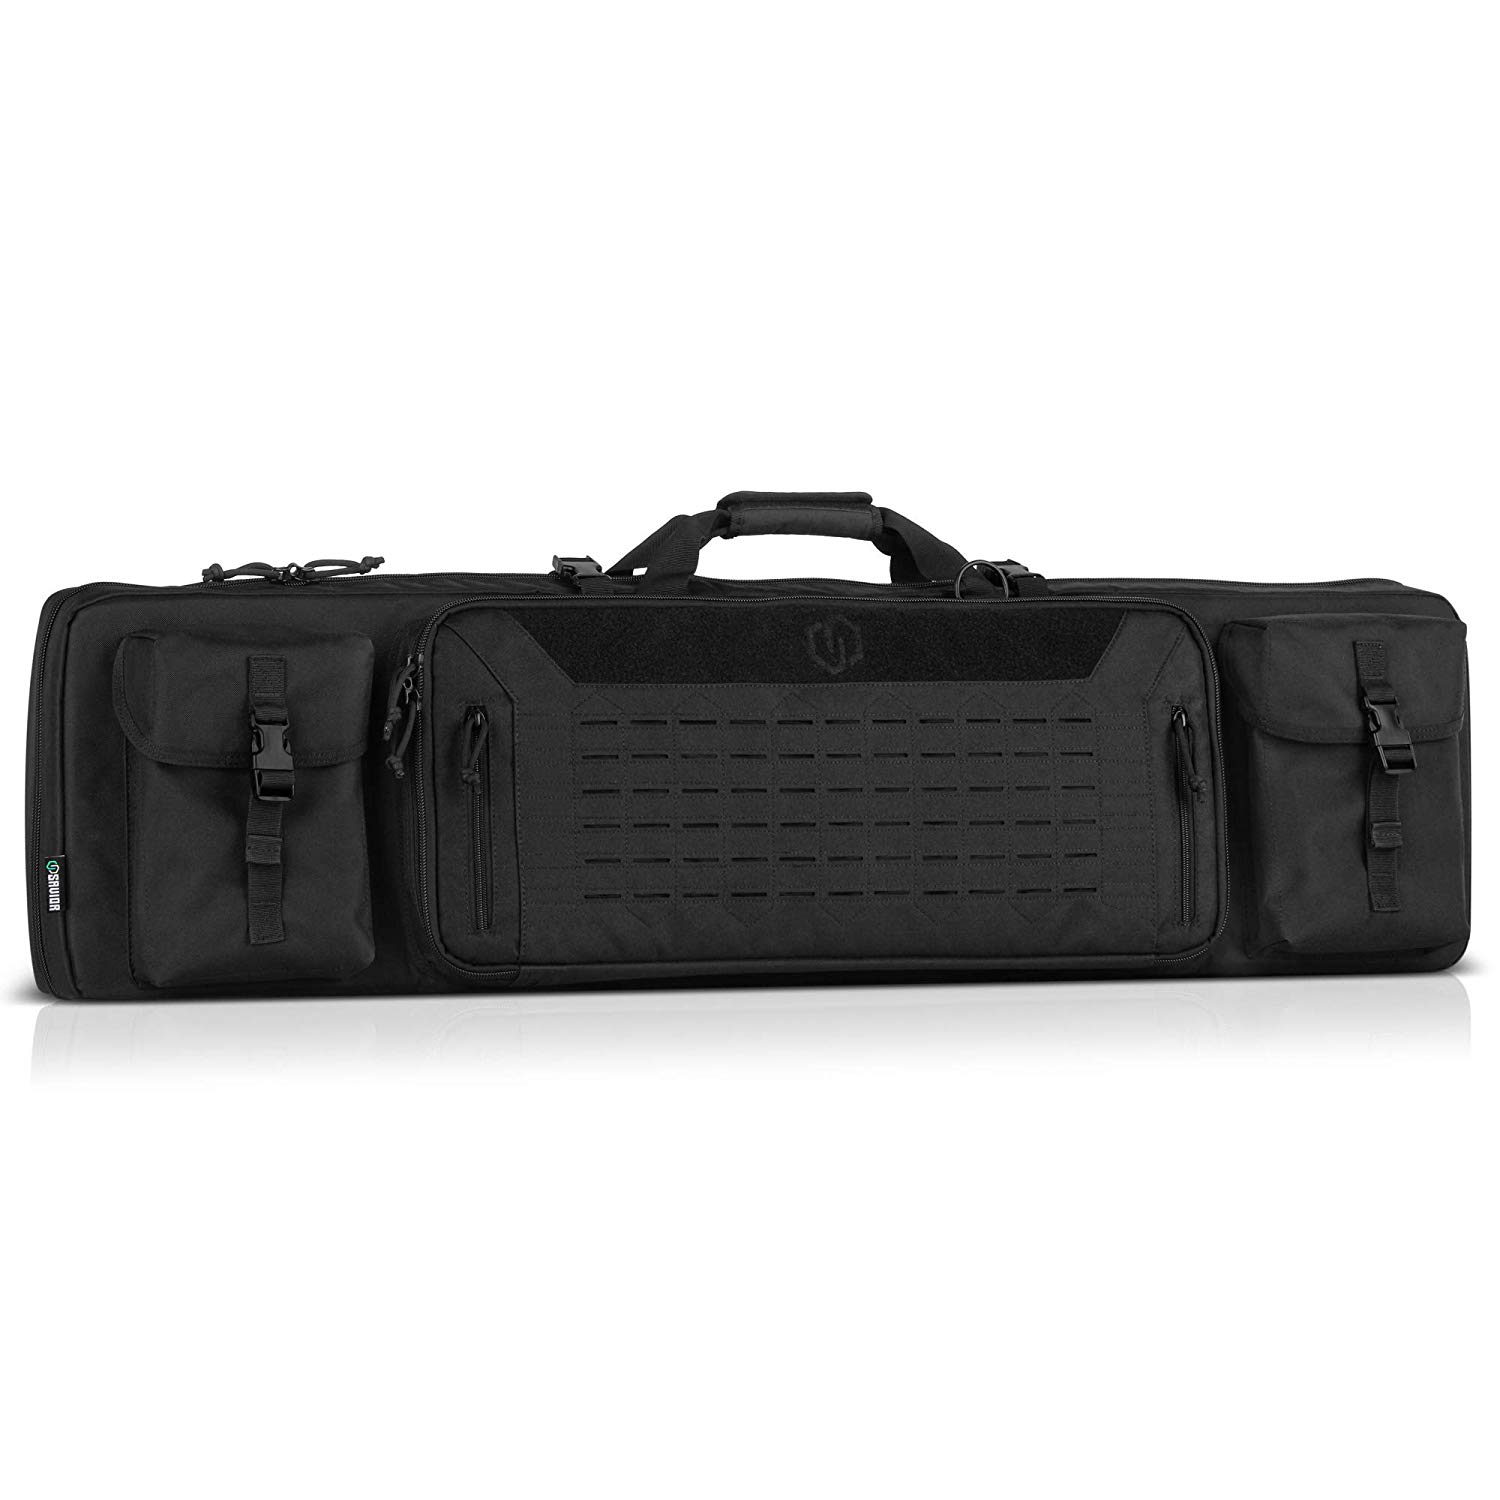 Savior Equipment Urban Warfare Tactical Gun Bag